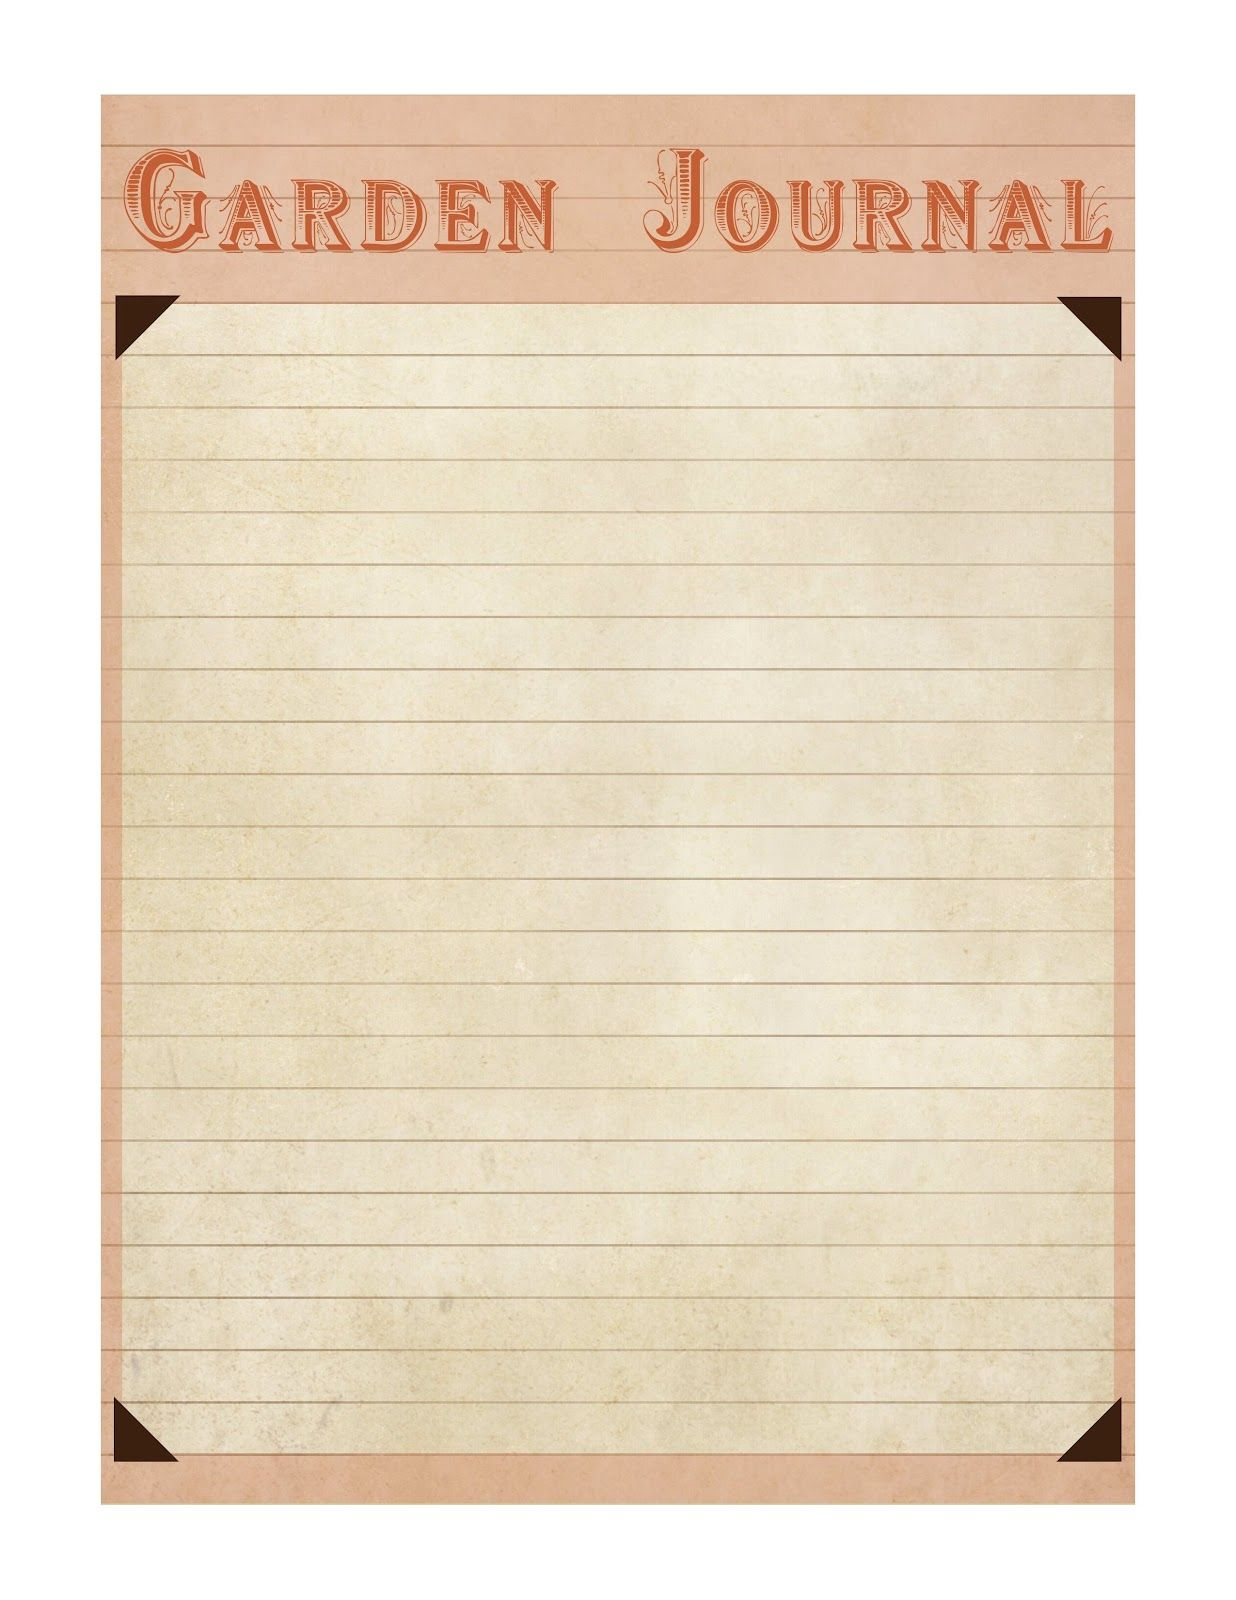 Garden Journal Blank Page Free Printable Also With Hollyhock